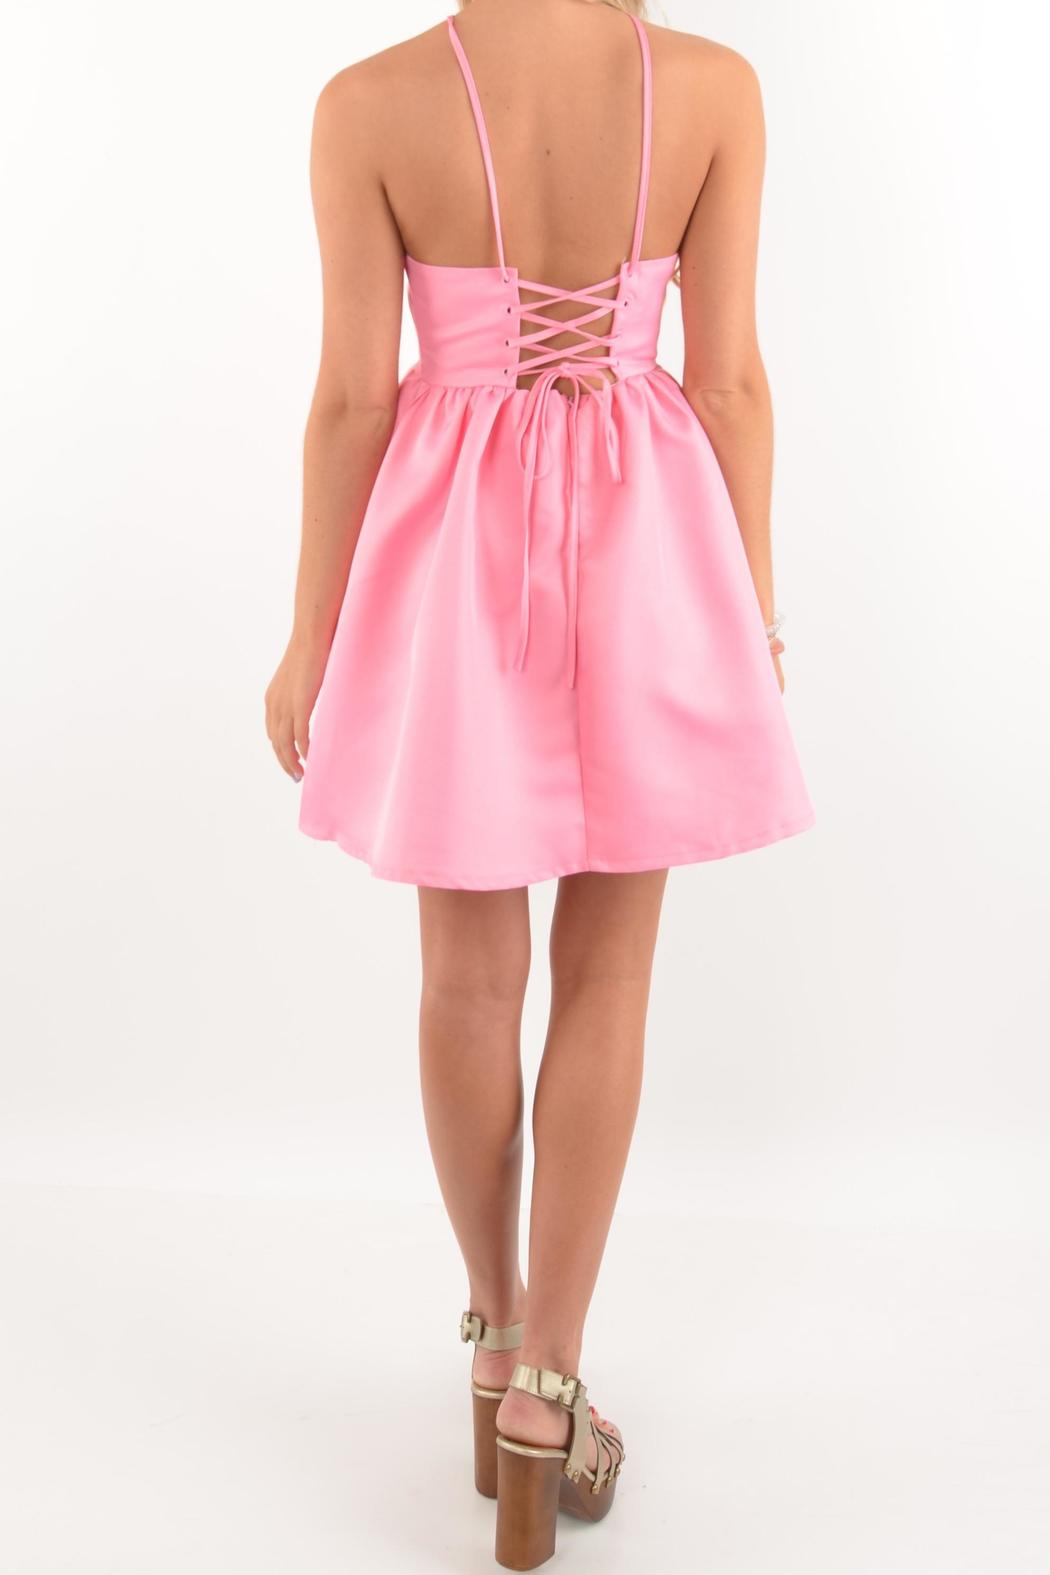 L&-39-atiste Bubblegum Pink Dress from Mississippi by Deep South Pout ...